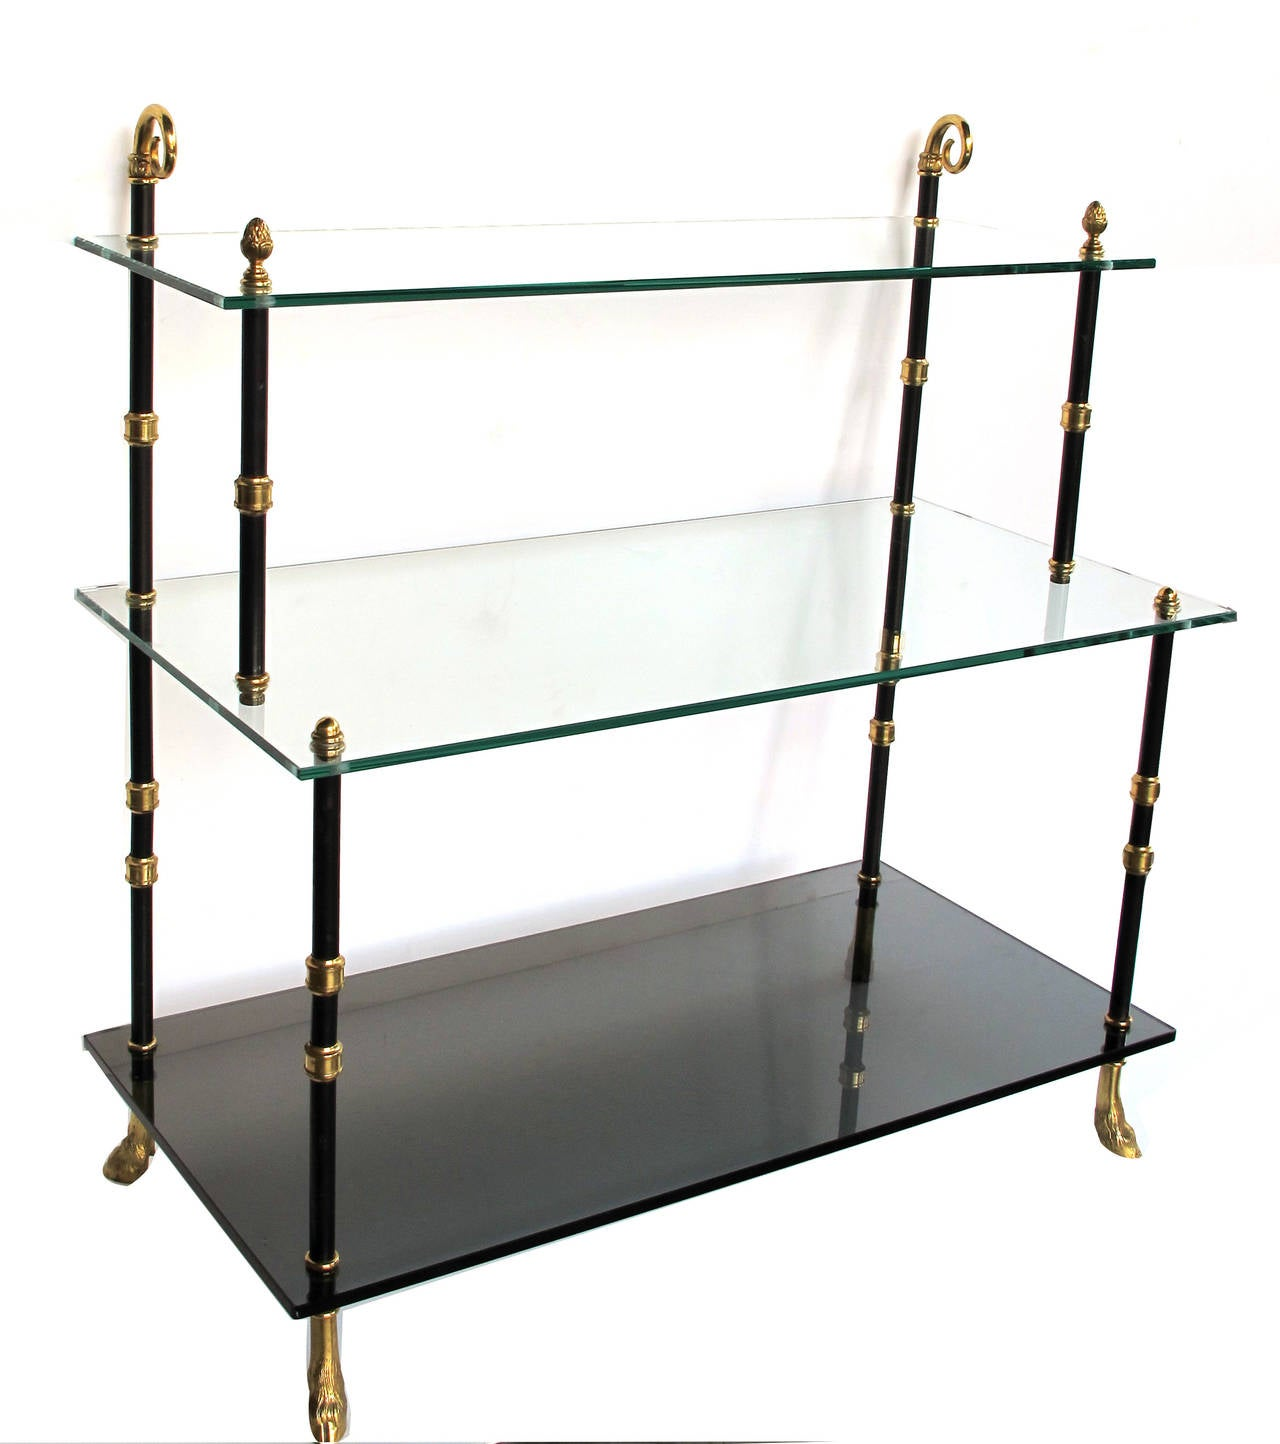 good quality french three tiered etagere with glass shelves by maison jansen for sale at 1stdibs. Black Bedroom Furniture Sets. Home Design Ideas